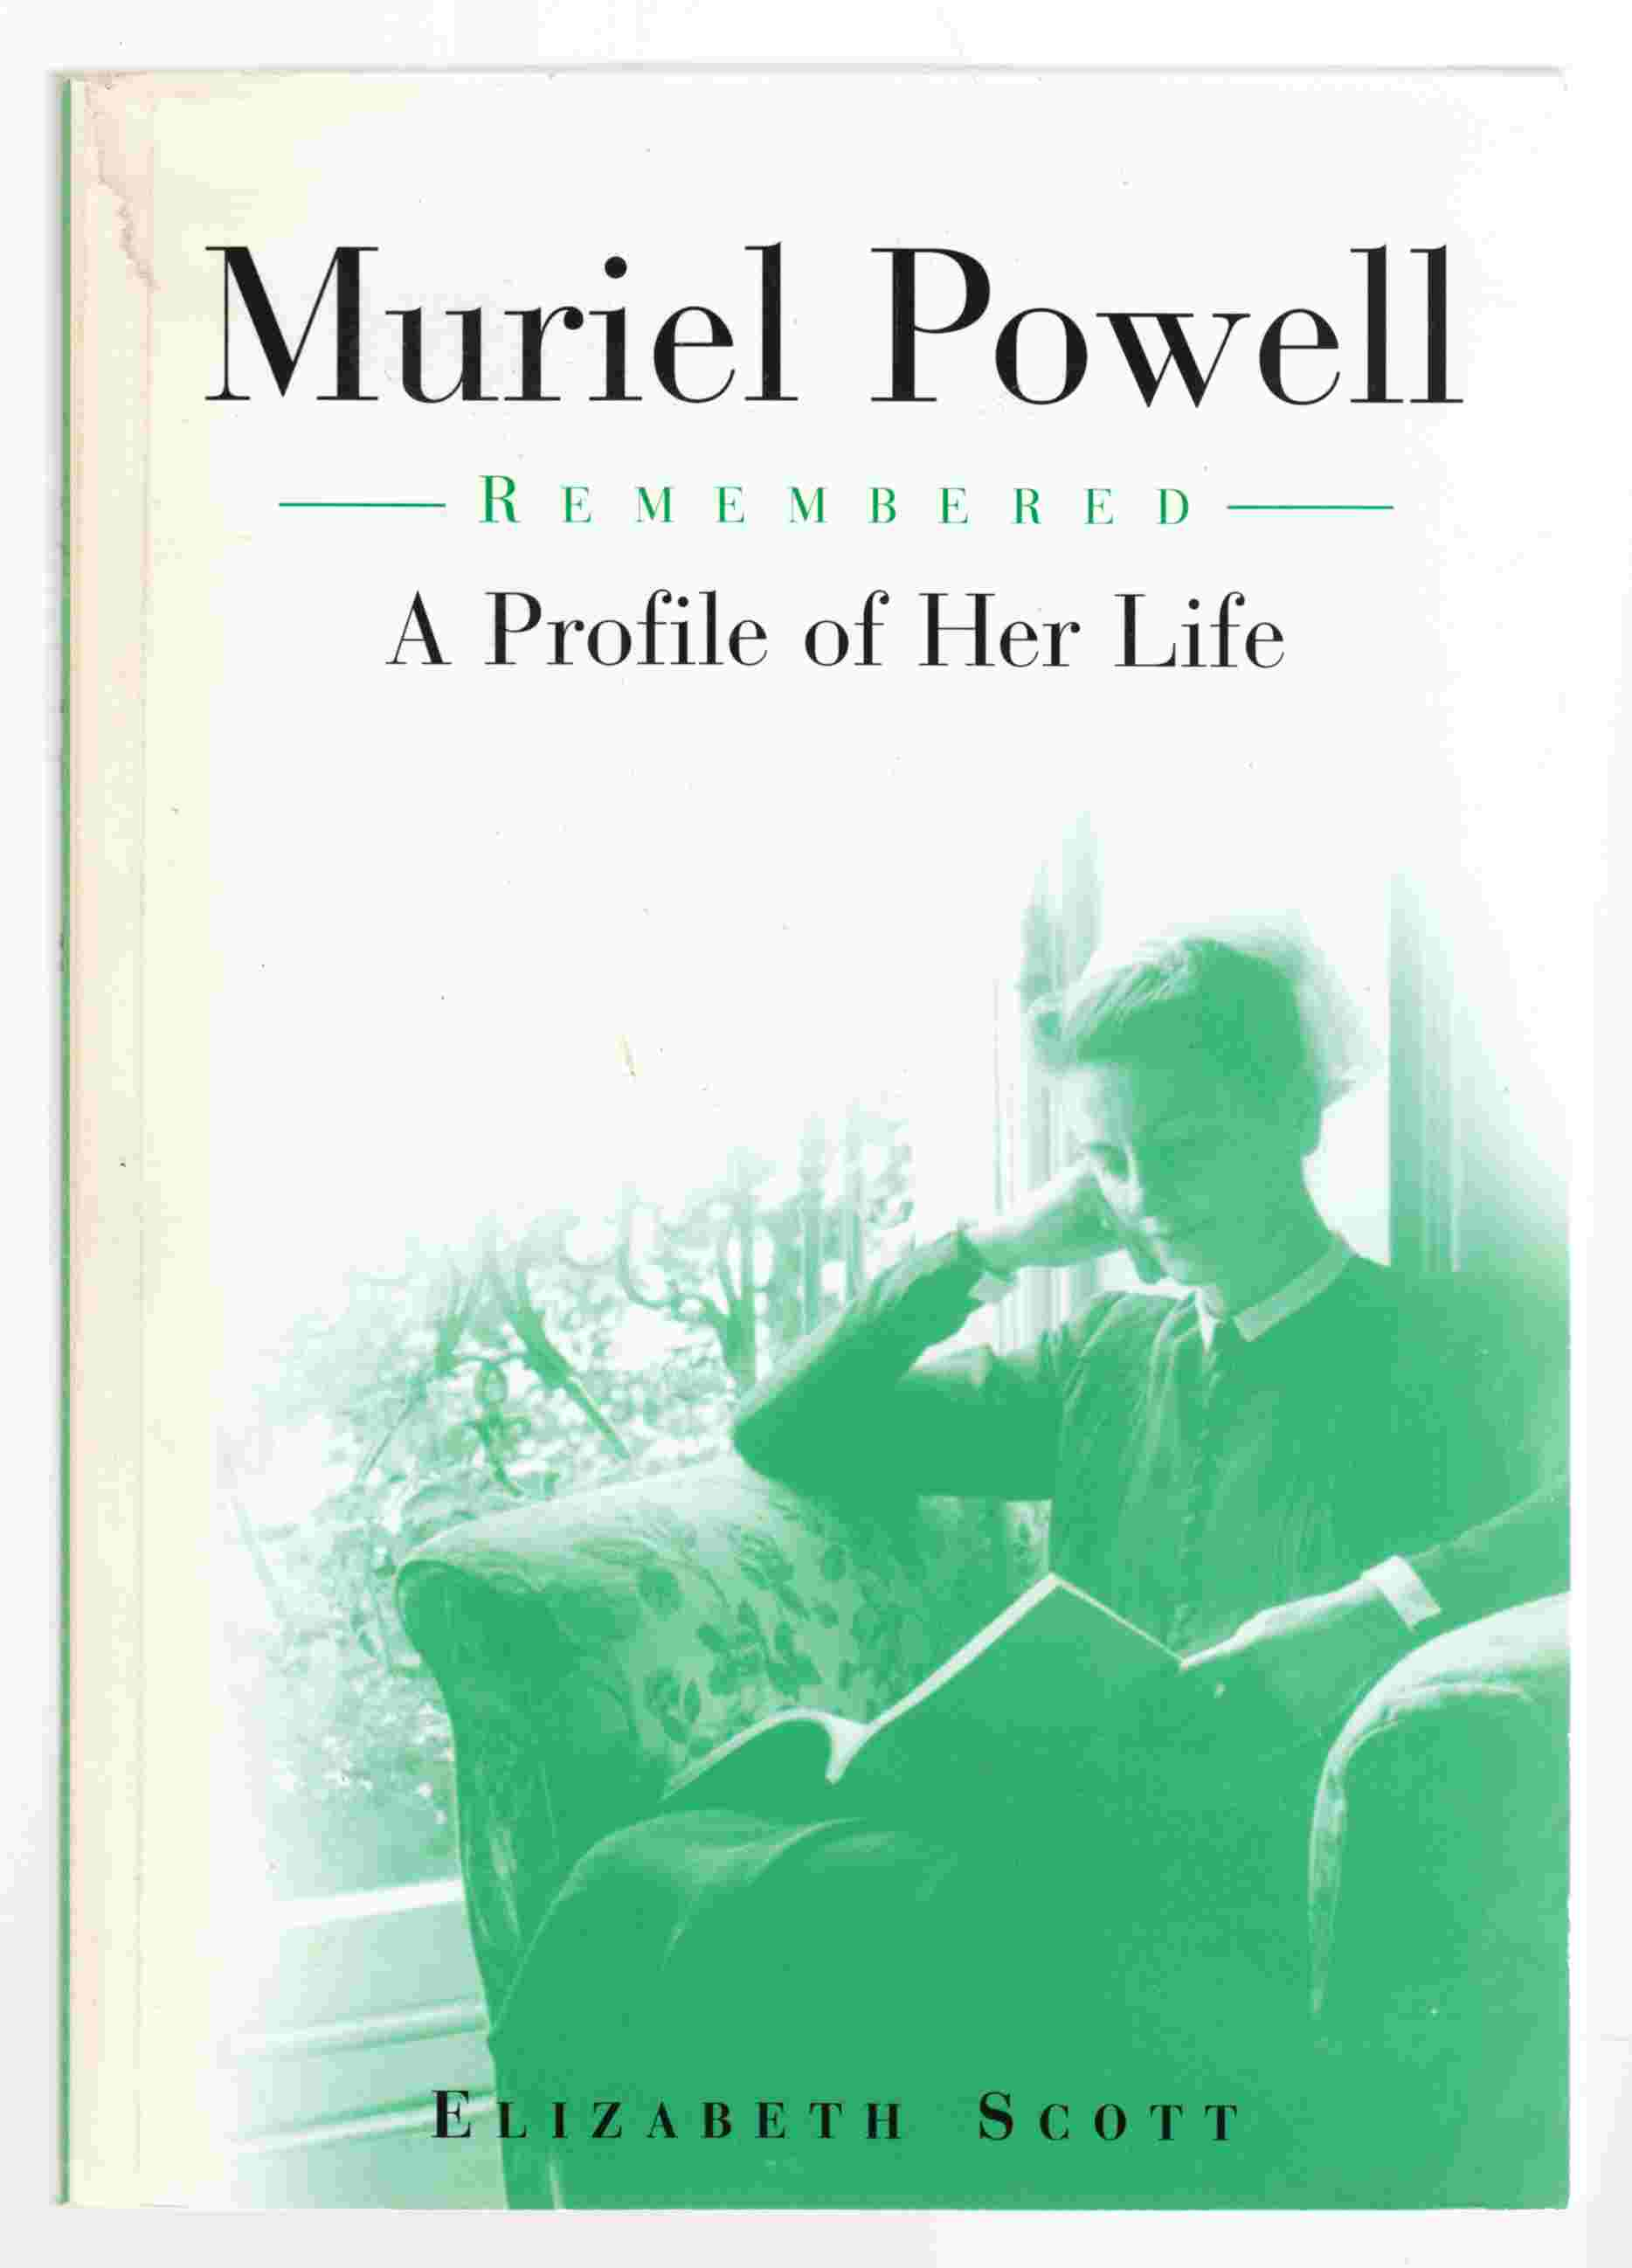 Image for Muriel Powell Remembered: A Profile of Her Life